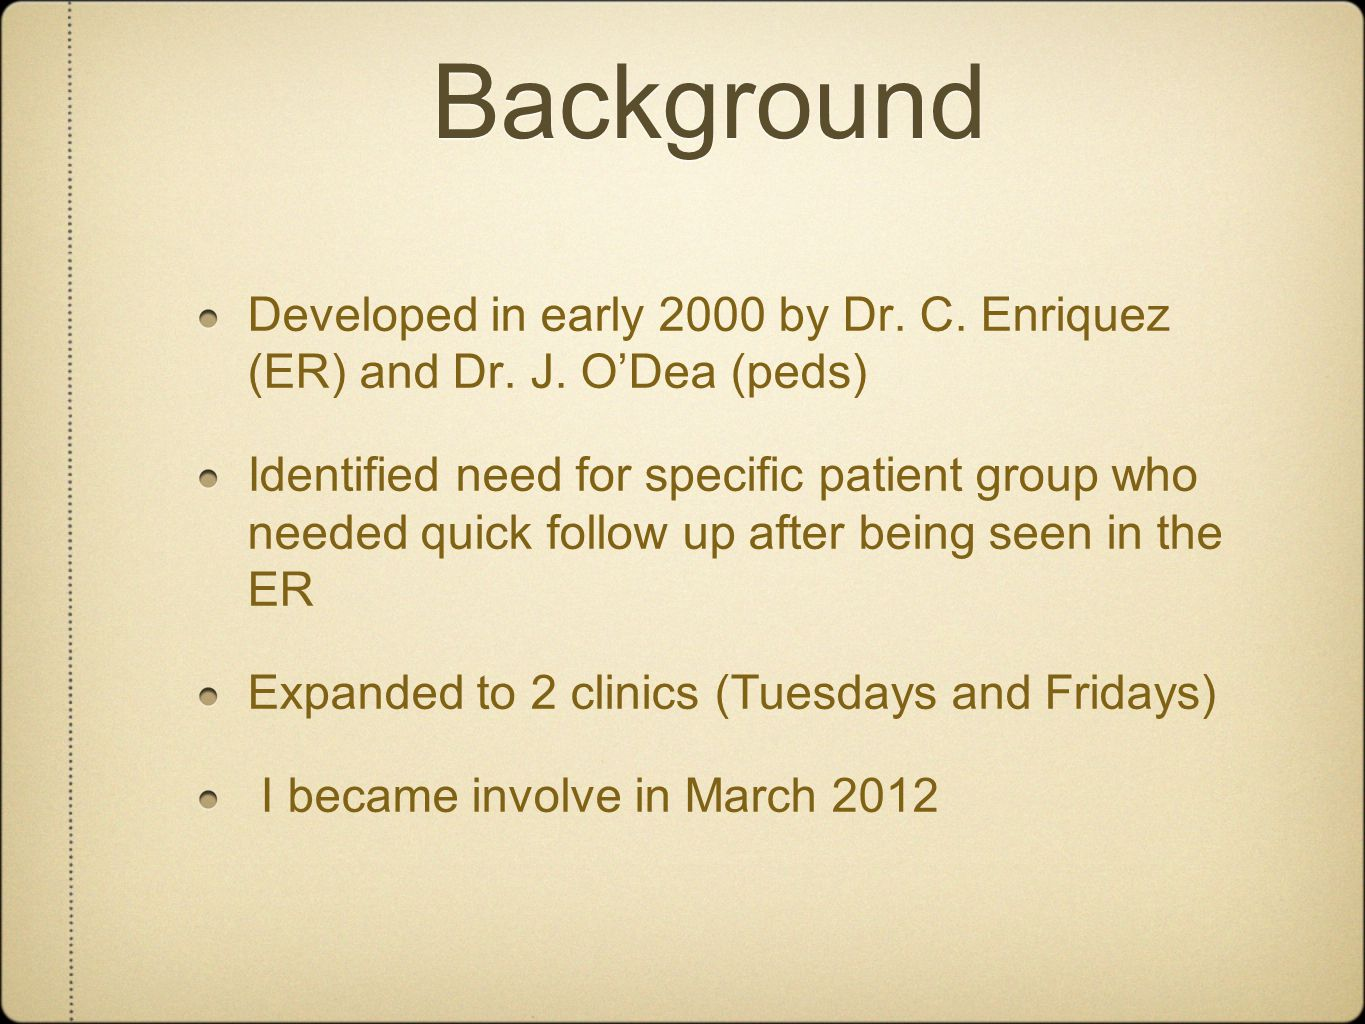 Background Developed in early 2000 by Dr. C. Enriquez (ER) and Dr. J. O'Dea (peds)